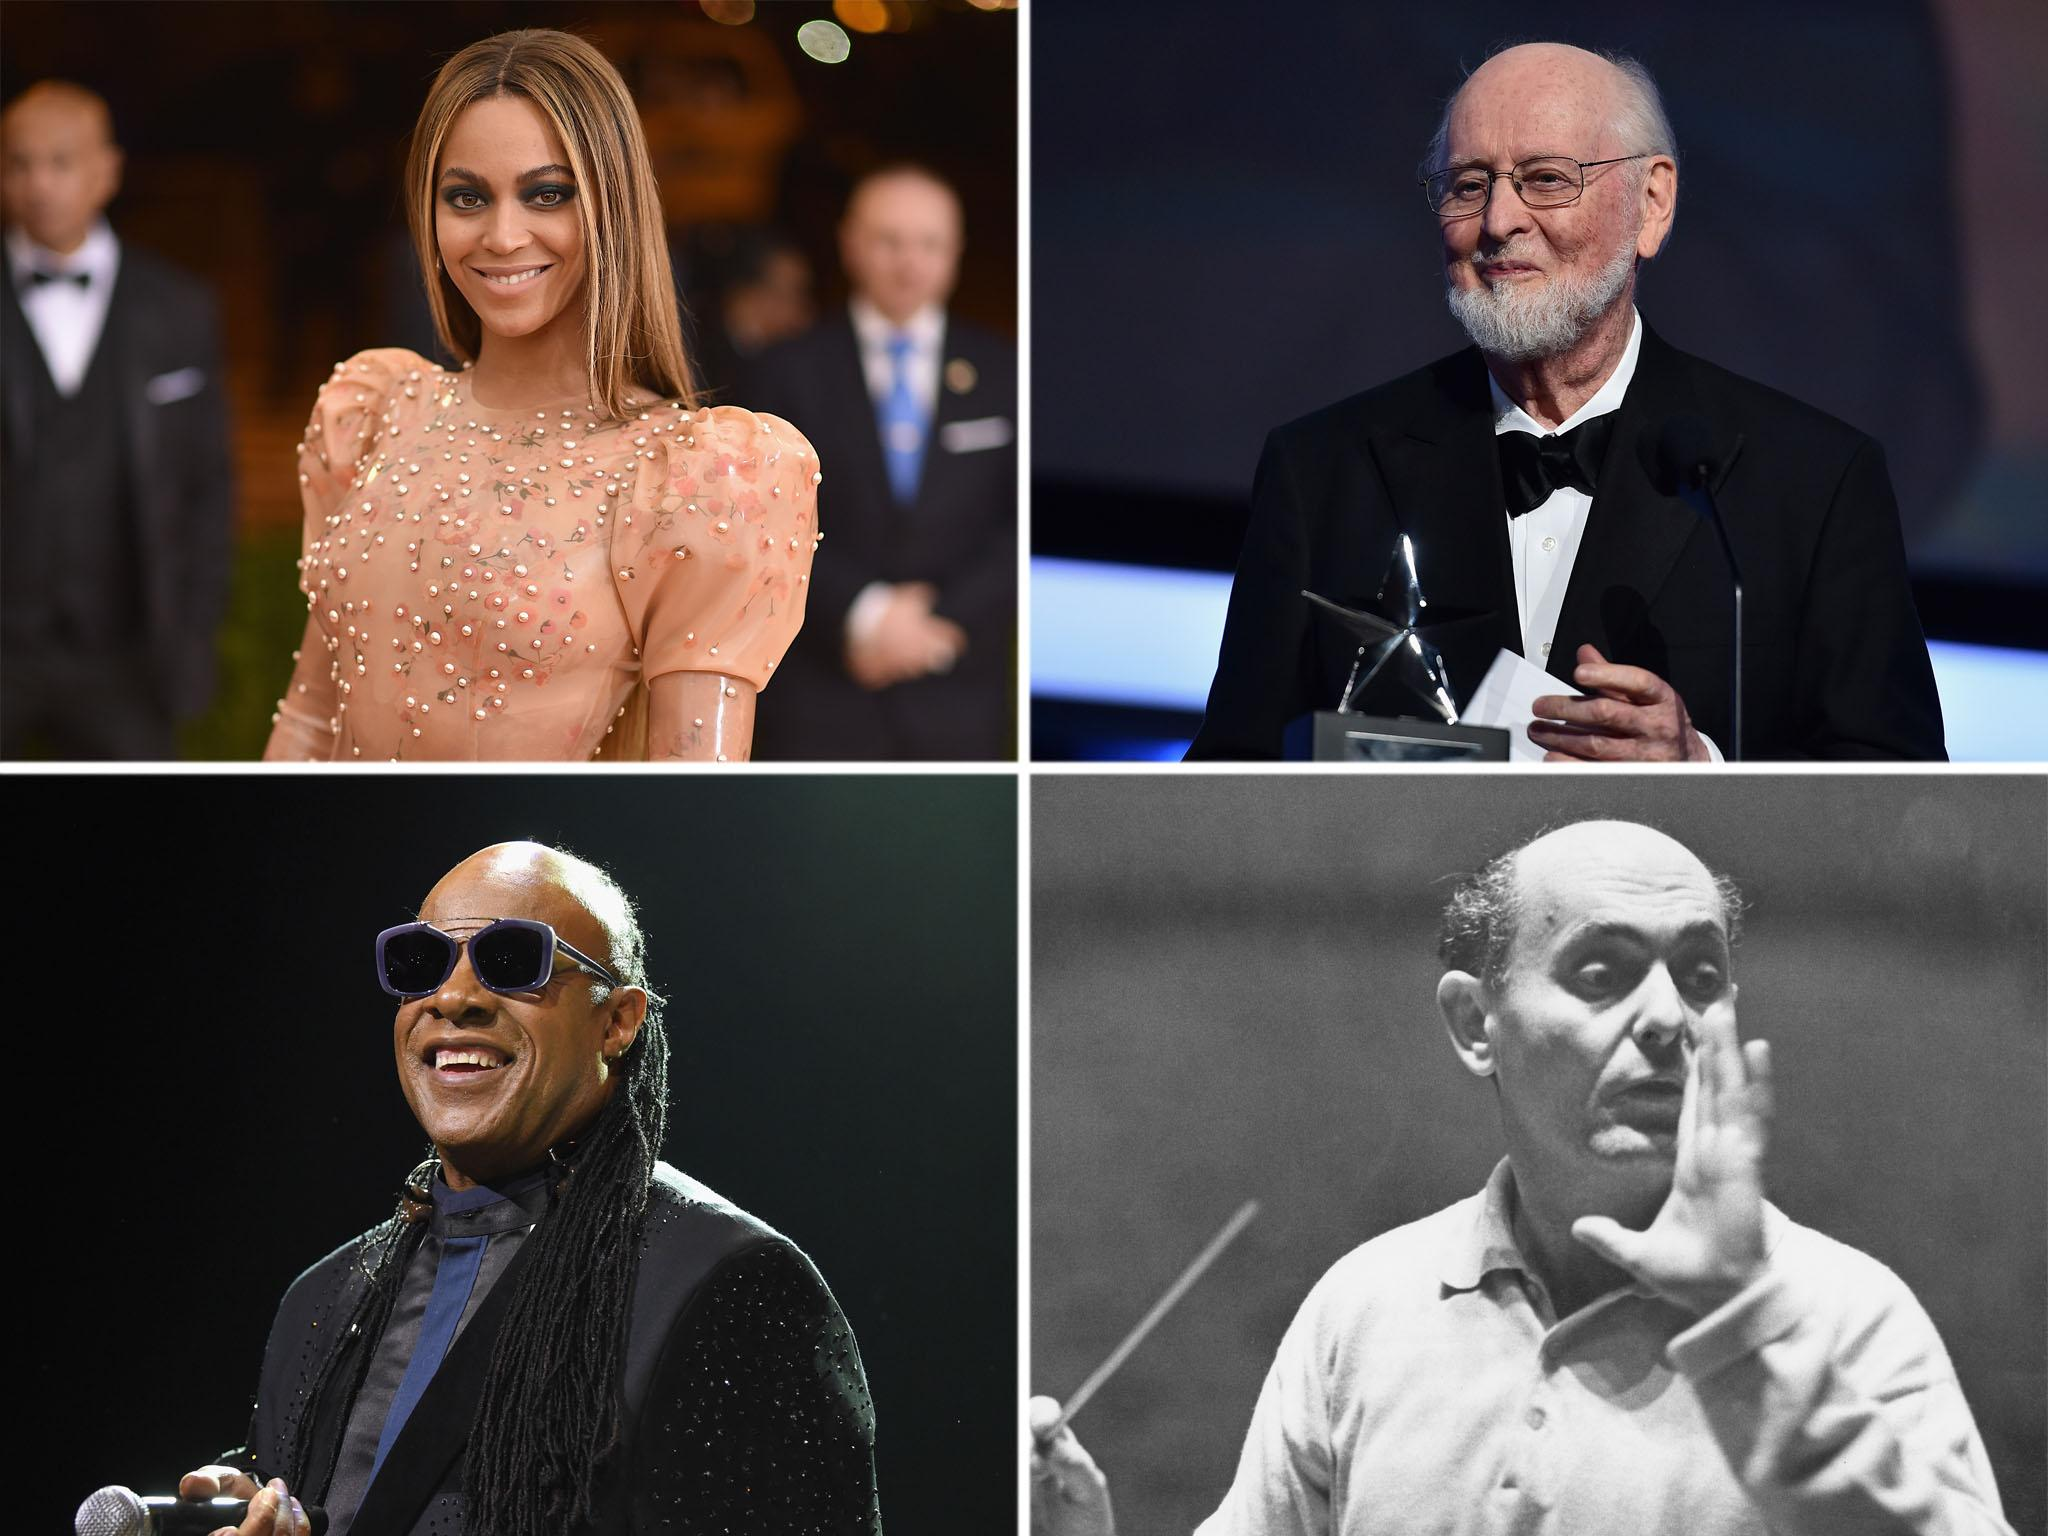 The 11 artists with the most Grammy Awards